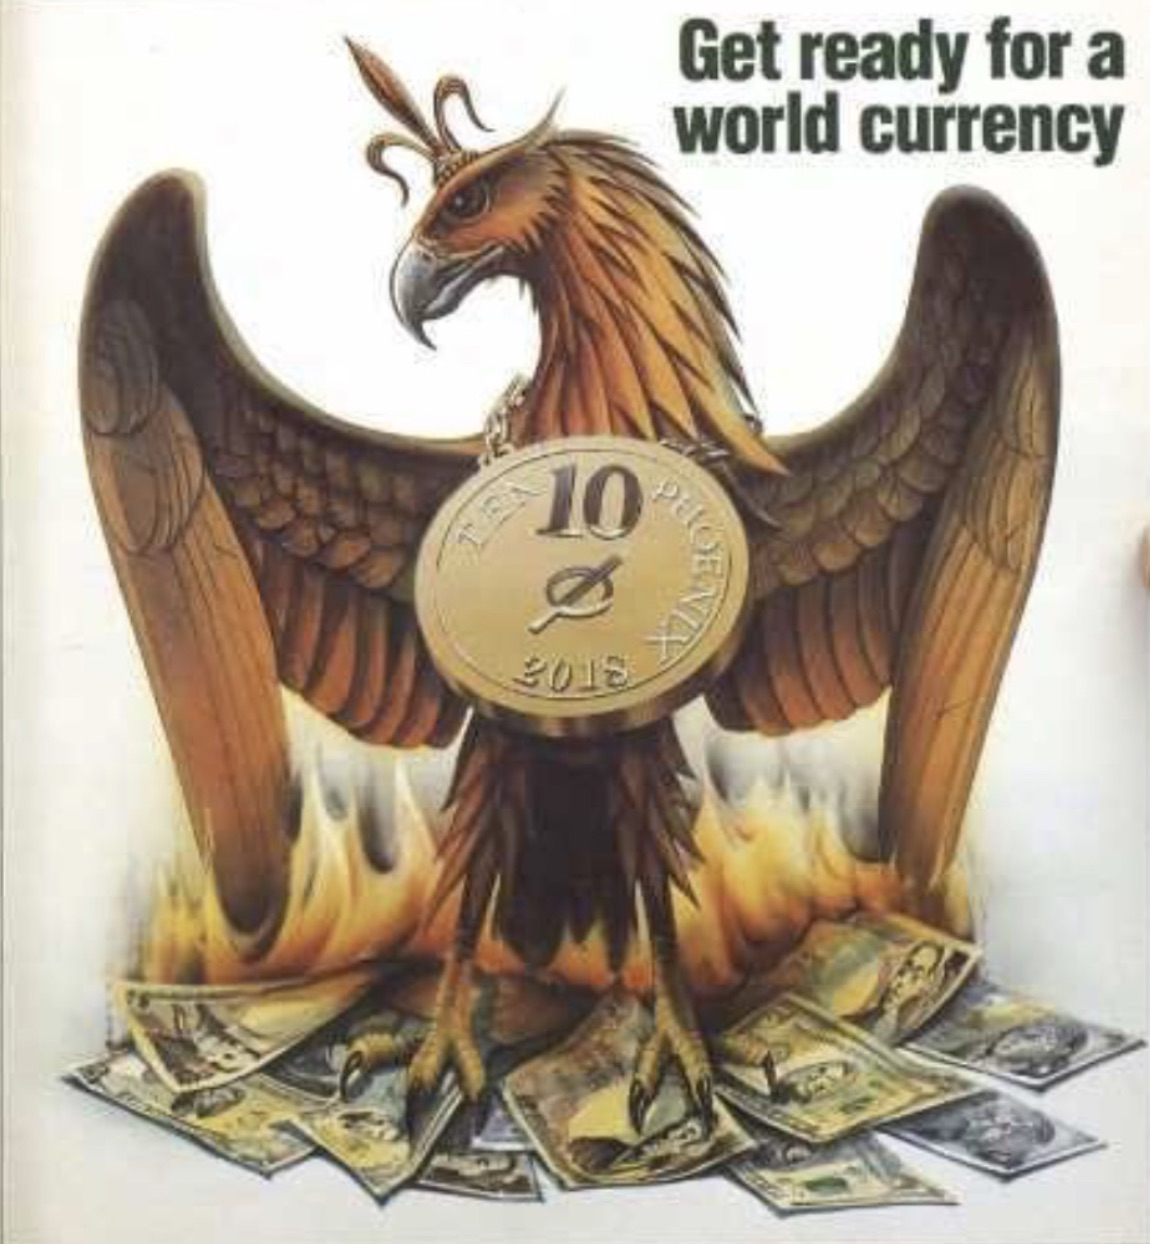 Rothschilds 1988 Prediction For New World Currency In 2018